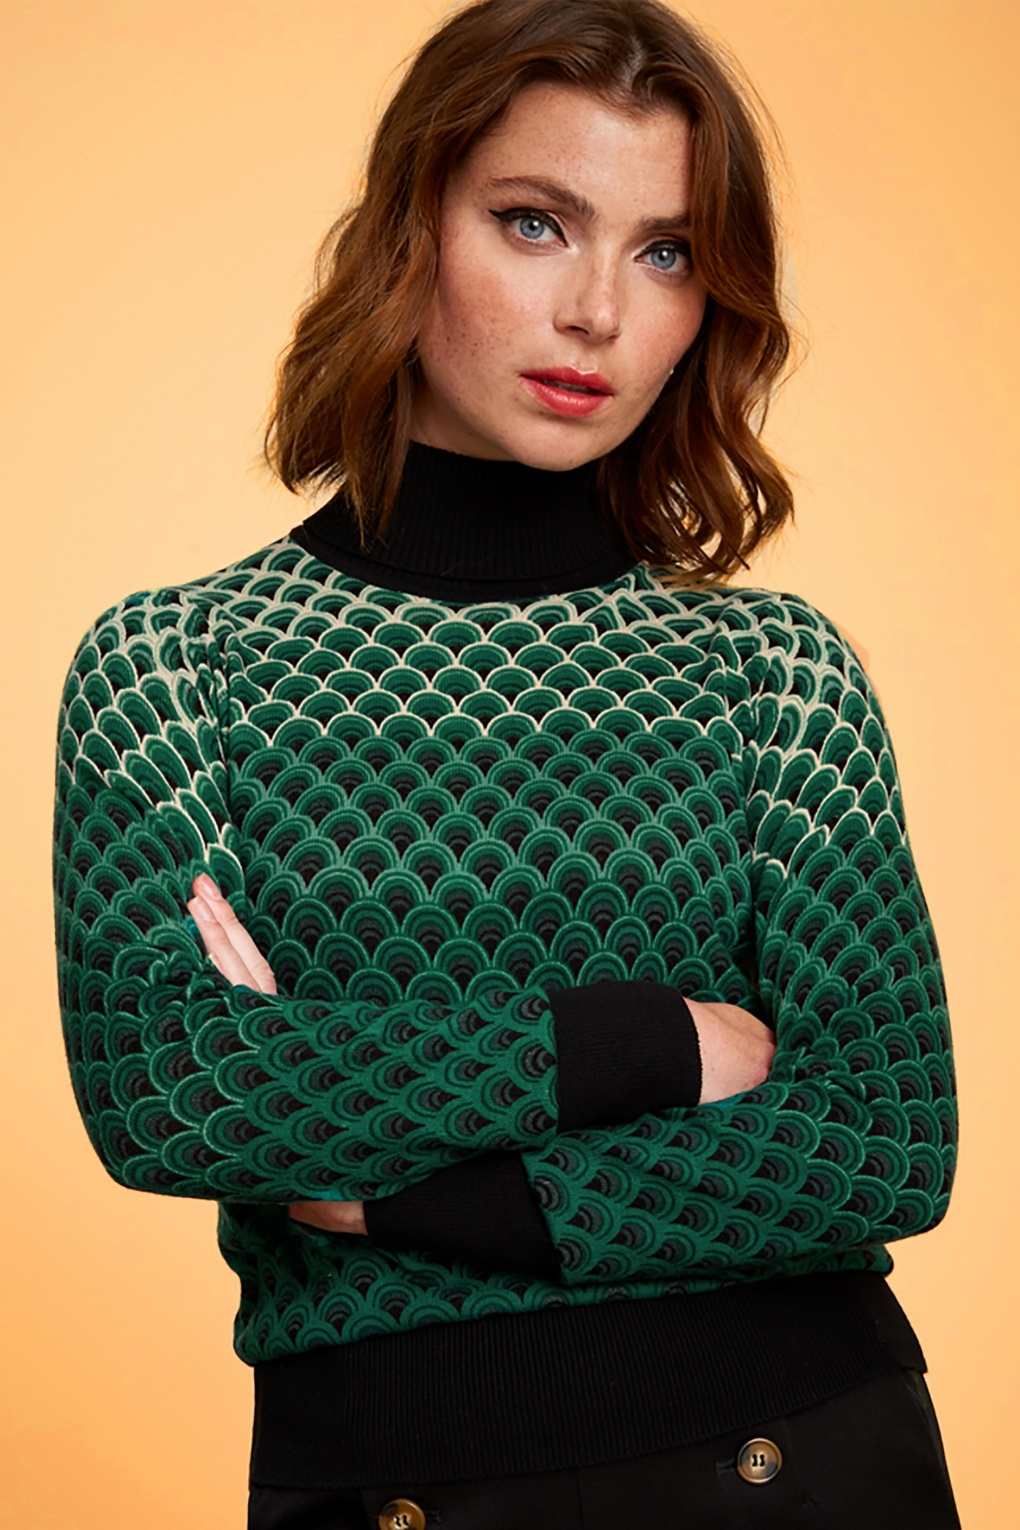 70s Clothes | Hippie Clothes & Outfits 70s Rollneck Pastery Knit Top in Black £51.26 AT vintagedancer.com